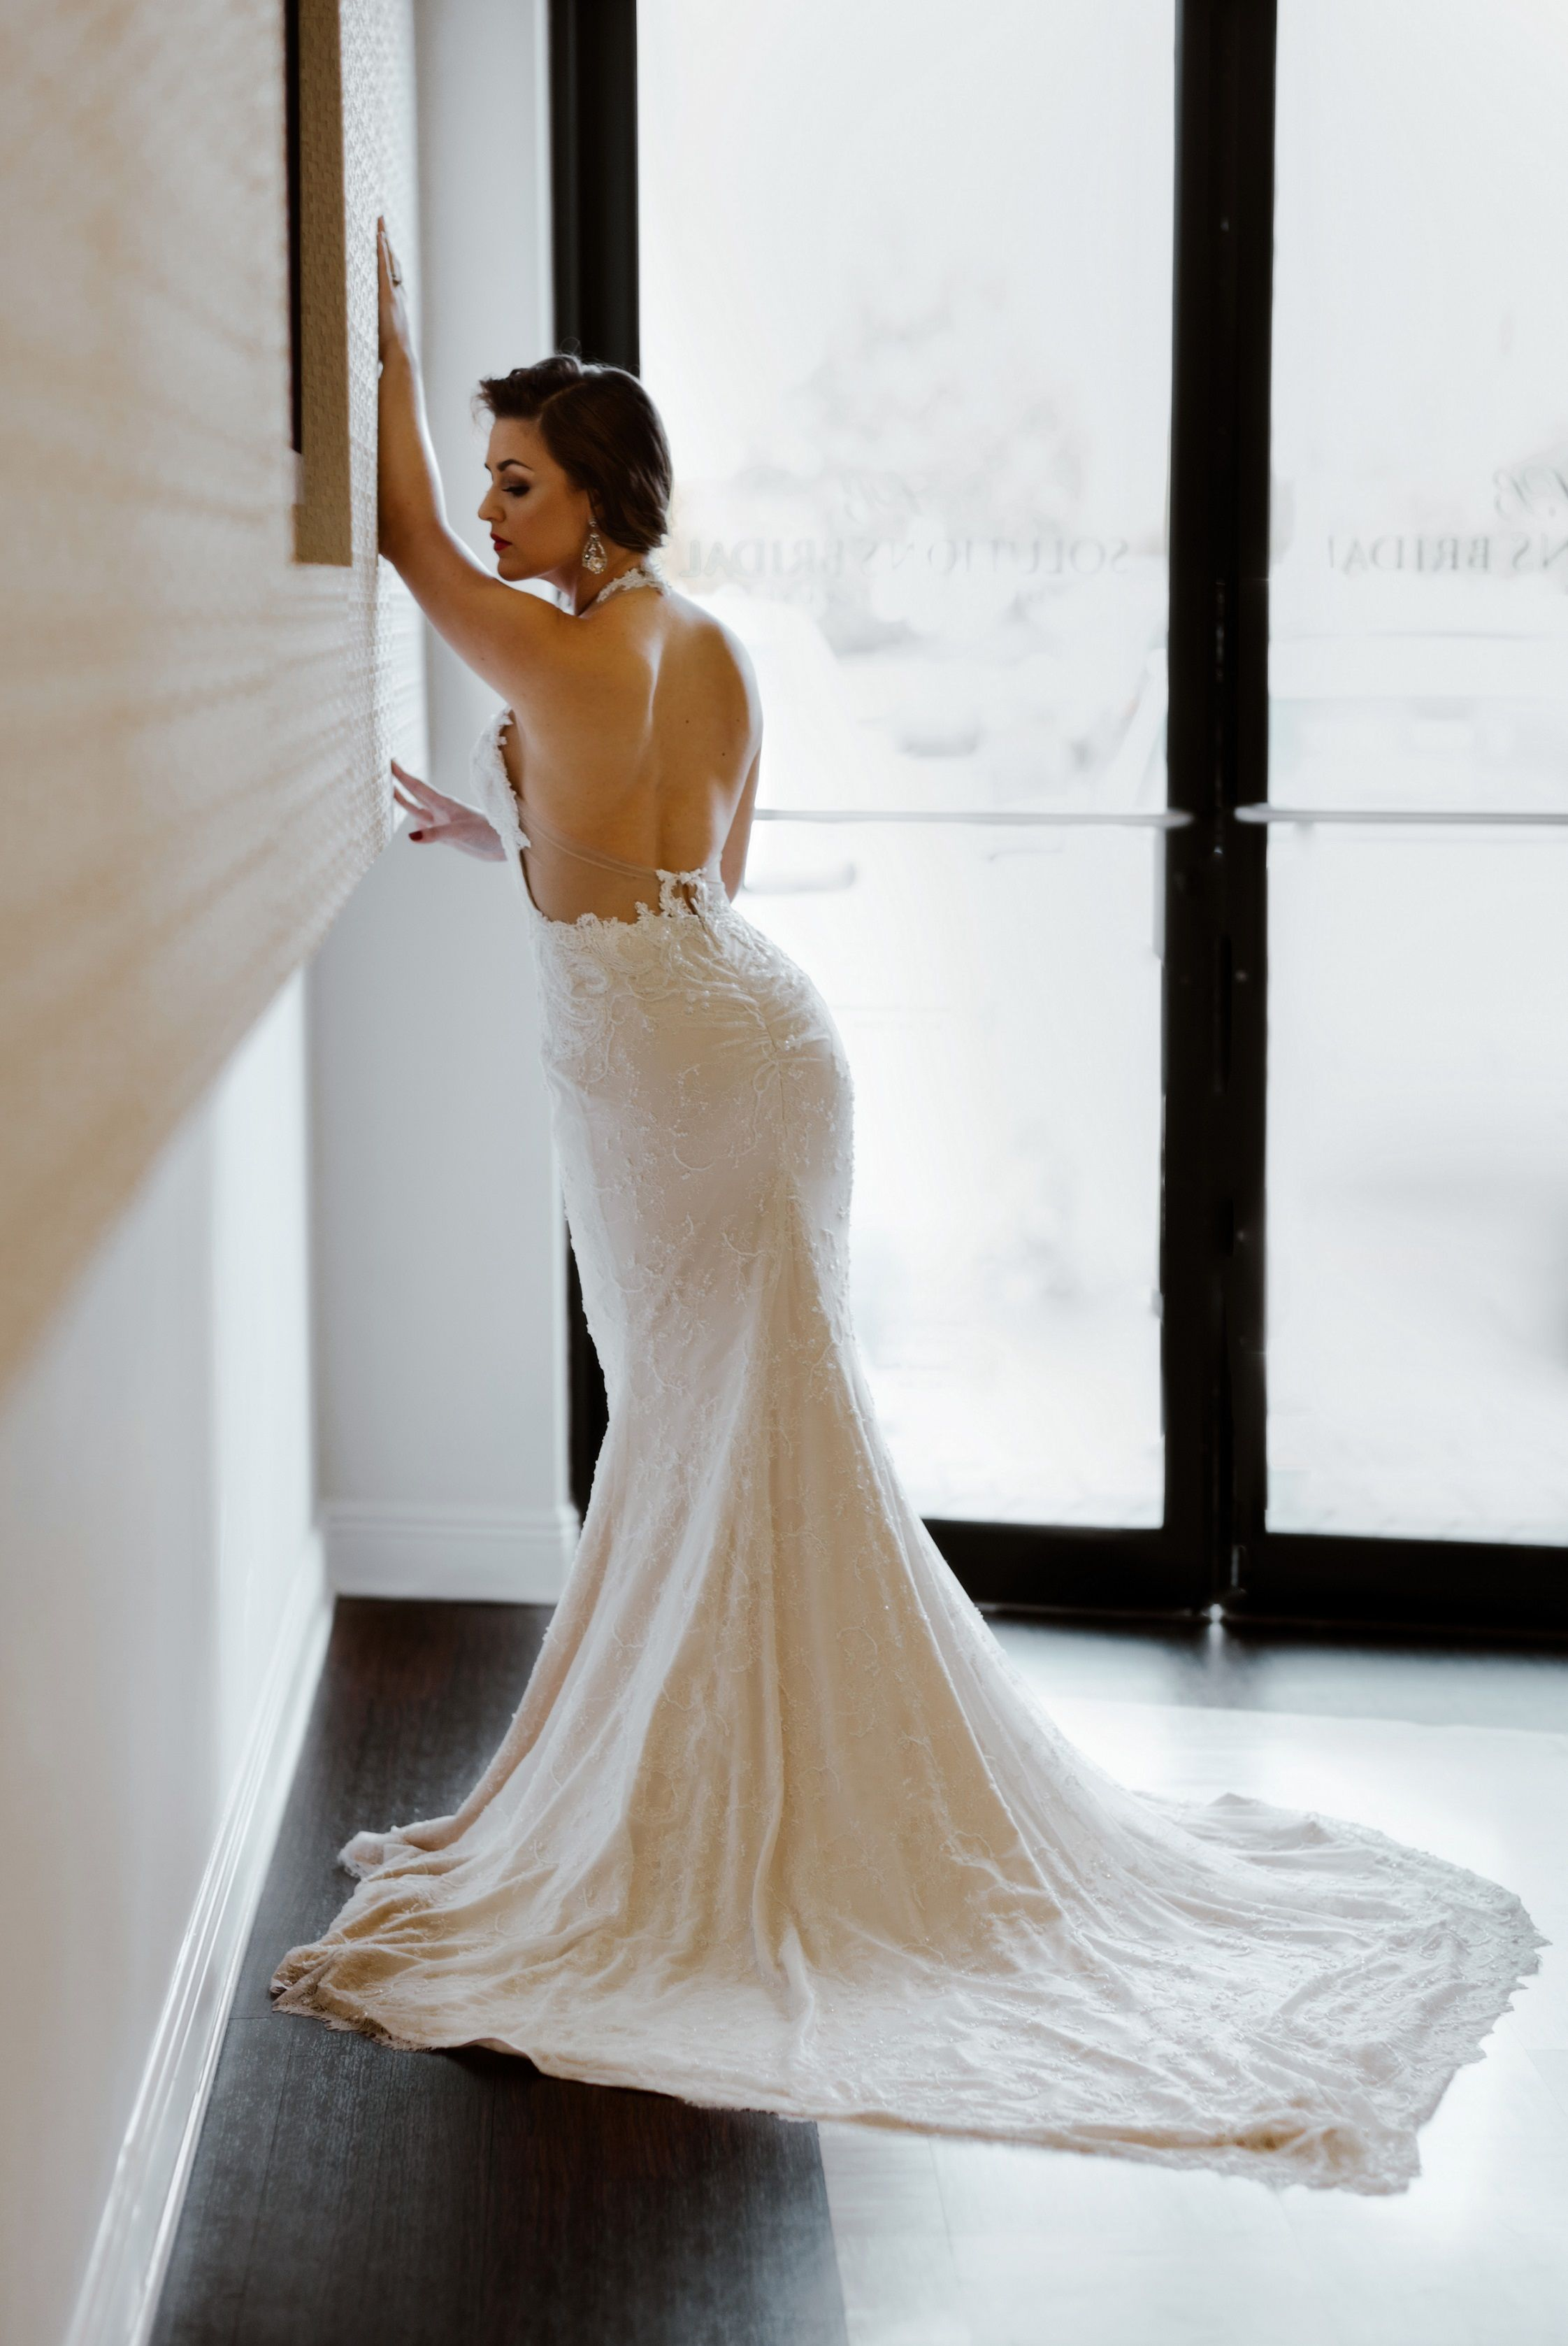 Low back with plunging neckline lace wedding dress from solutions low back with plunging neckline lace wedding dress from solutions bridal in orlando fl ombrellifo Choice Image